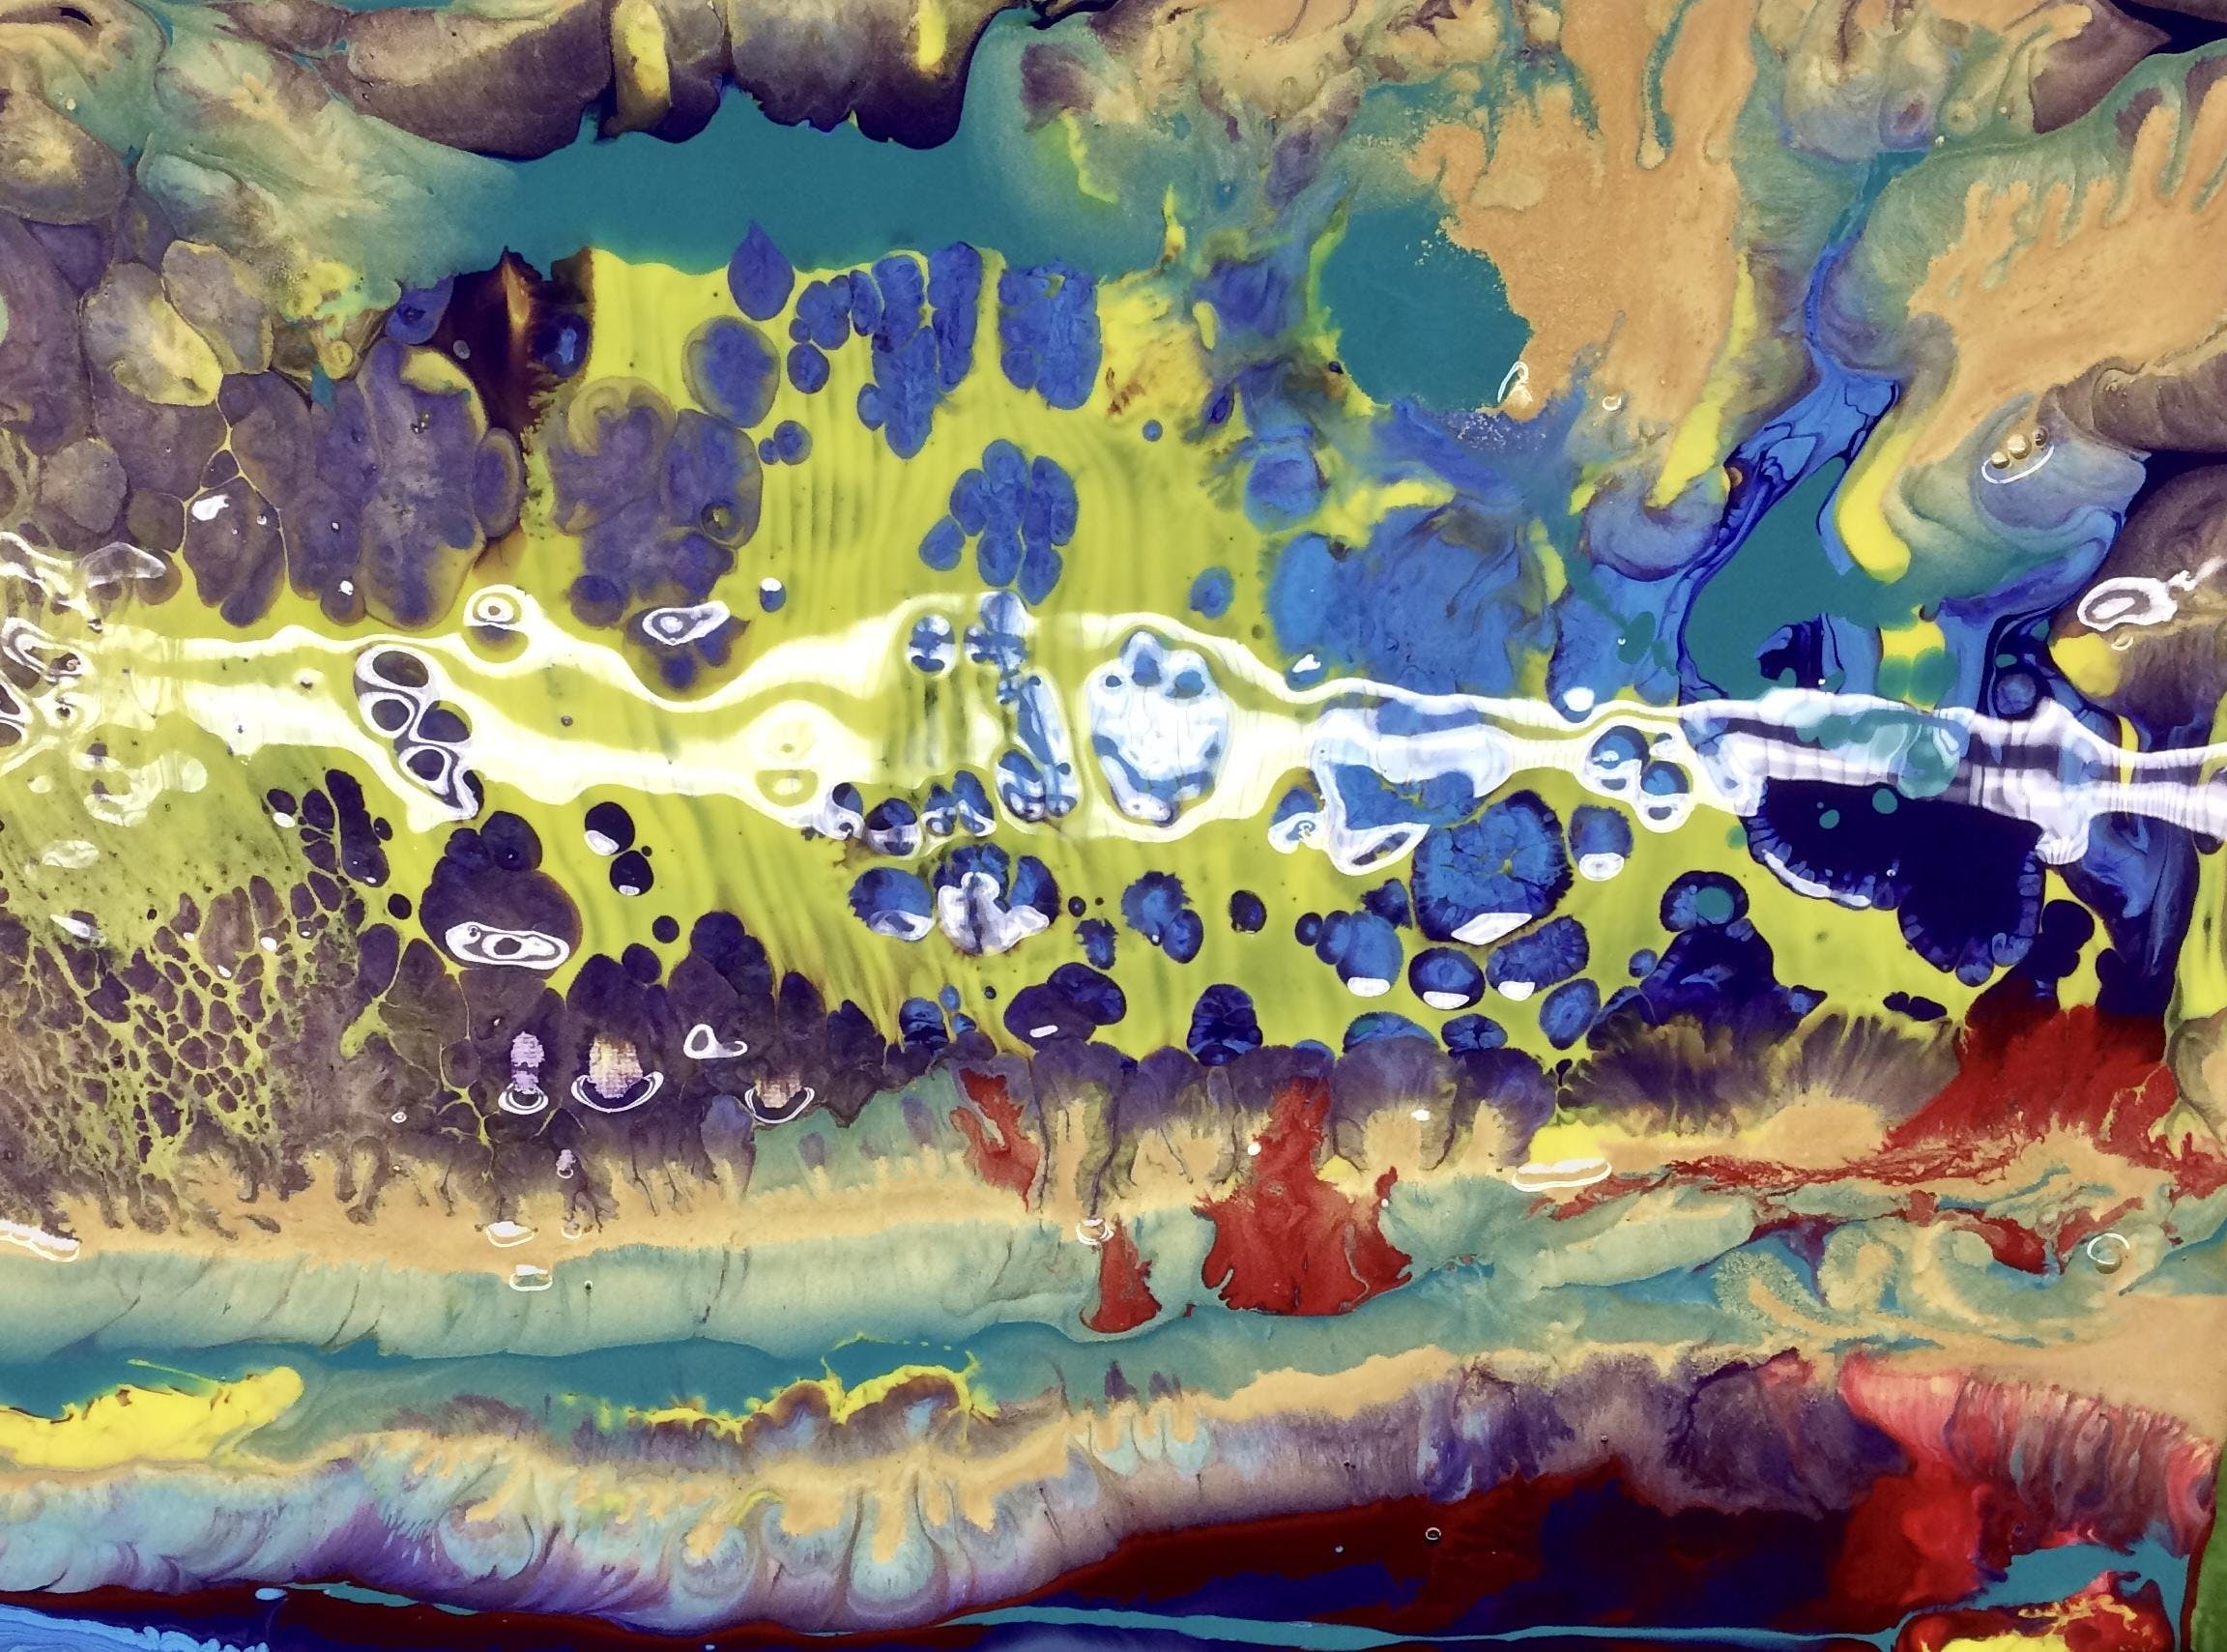 ACRYLIC POURING! At ARCH SF